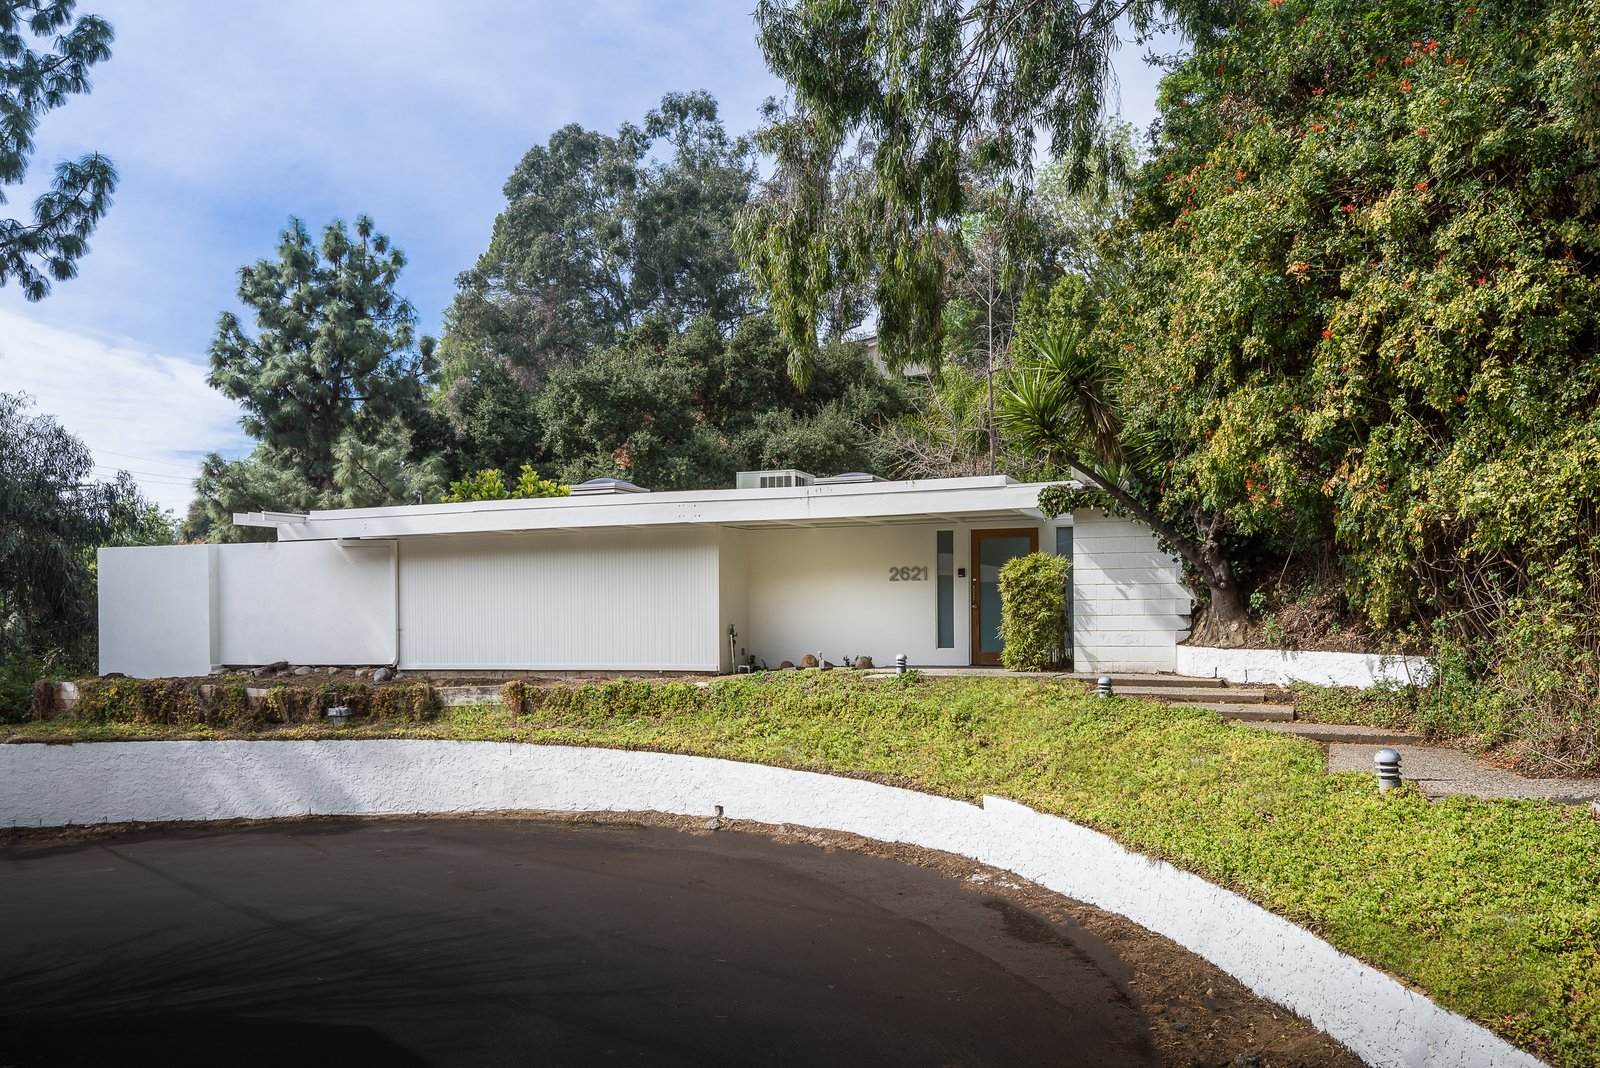 This house on La Cuesta Drive is located near Runyon Canyon Hiking Trails.